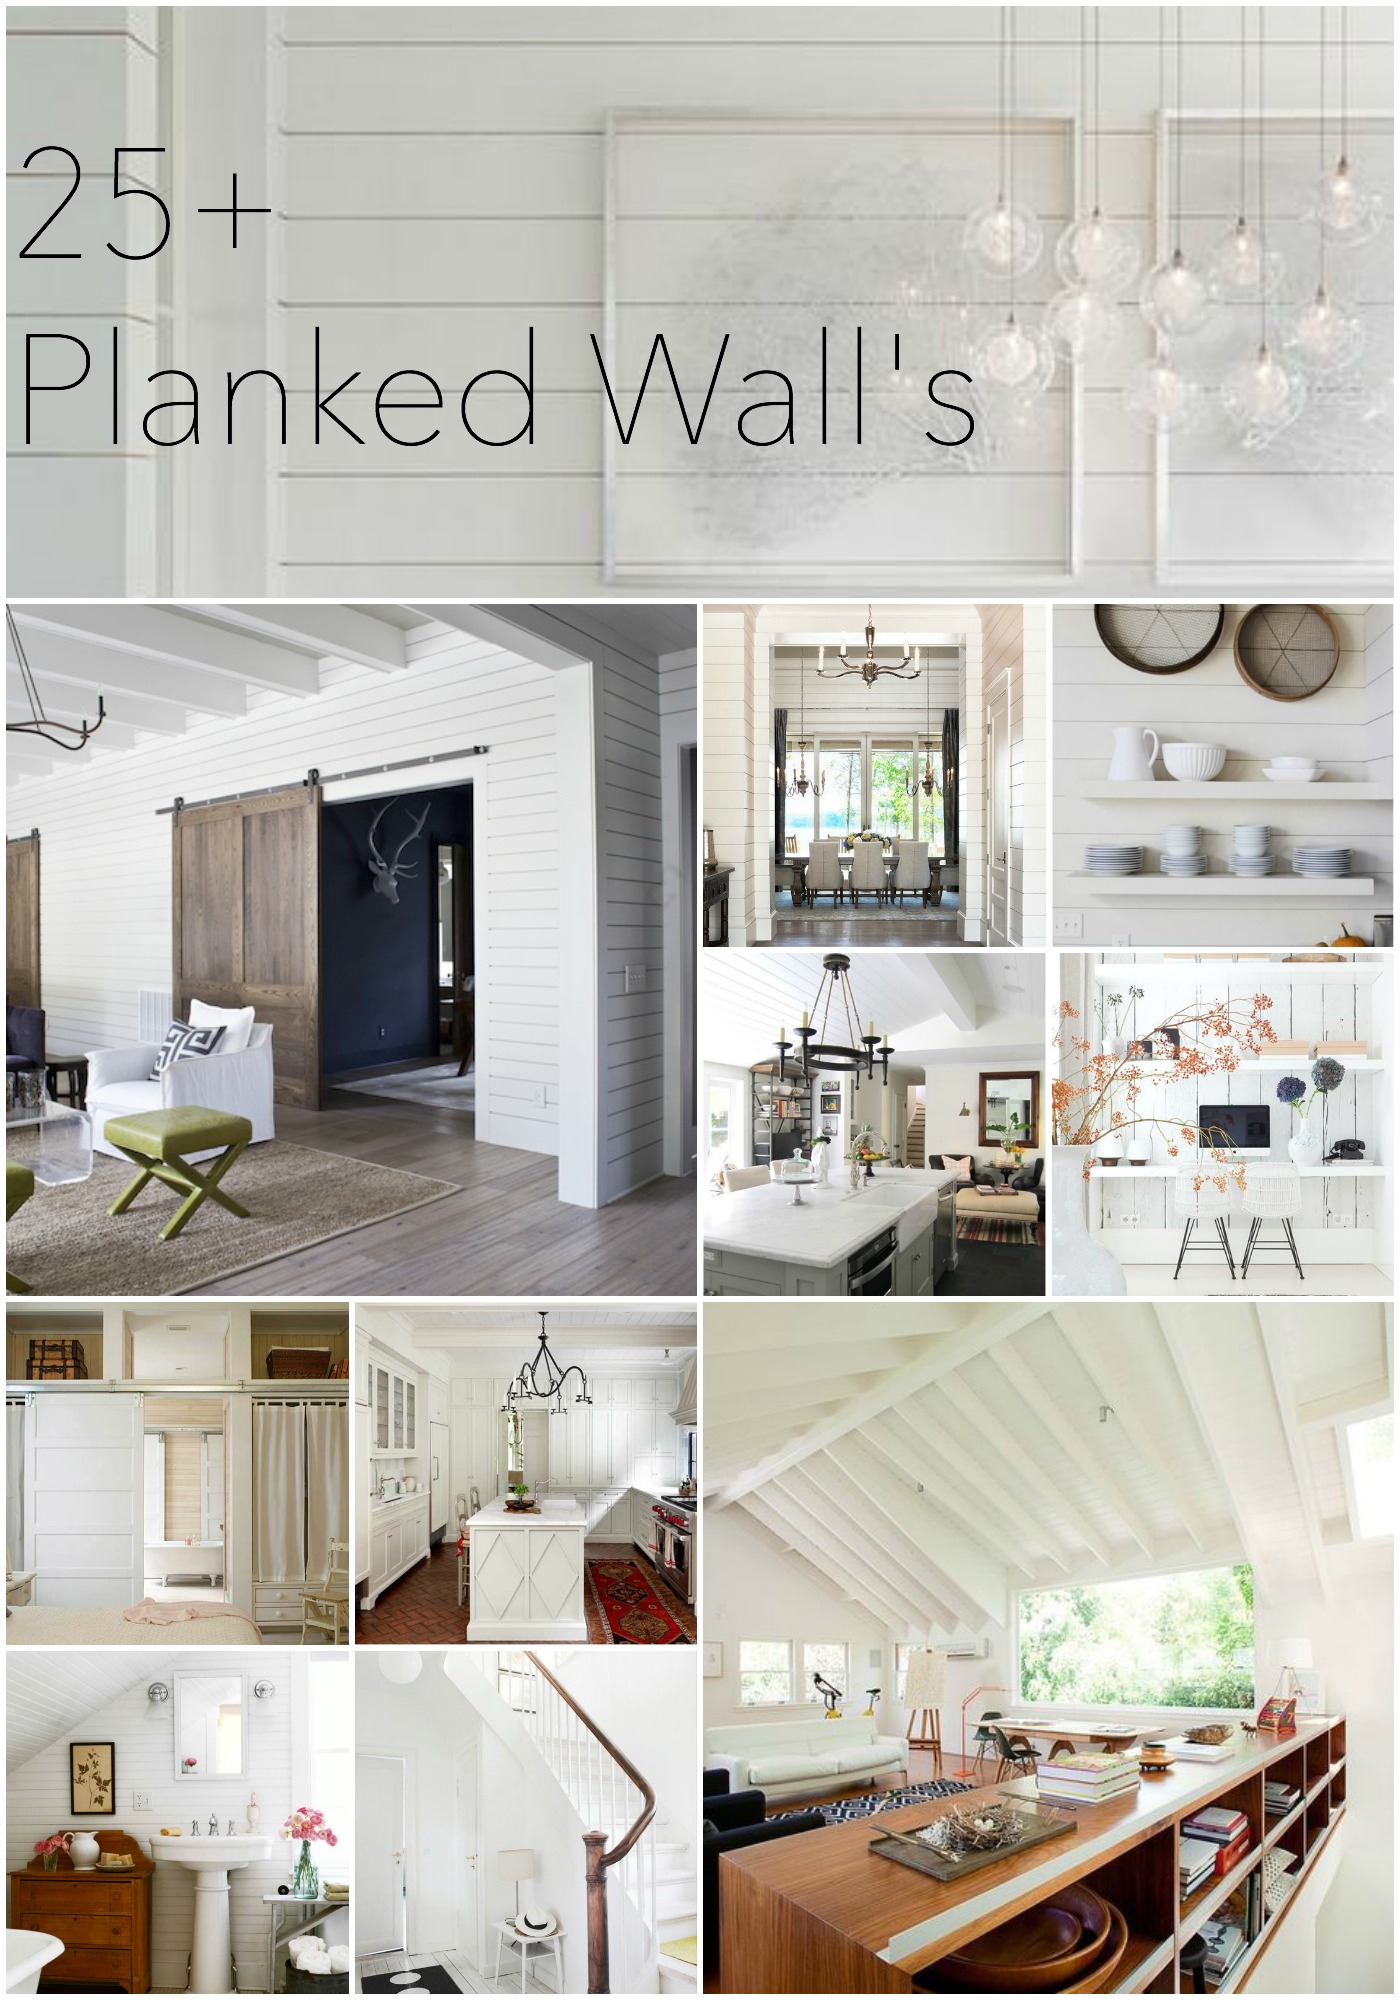 Plank walls in bathroom - 25 Planked Wall Inspiration Areas